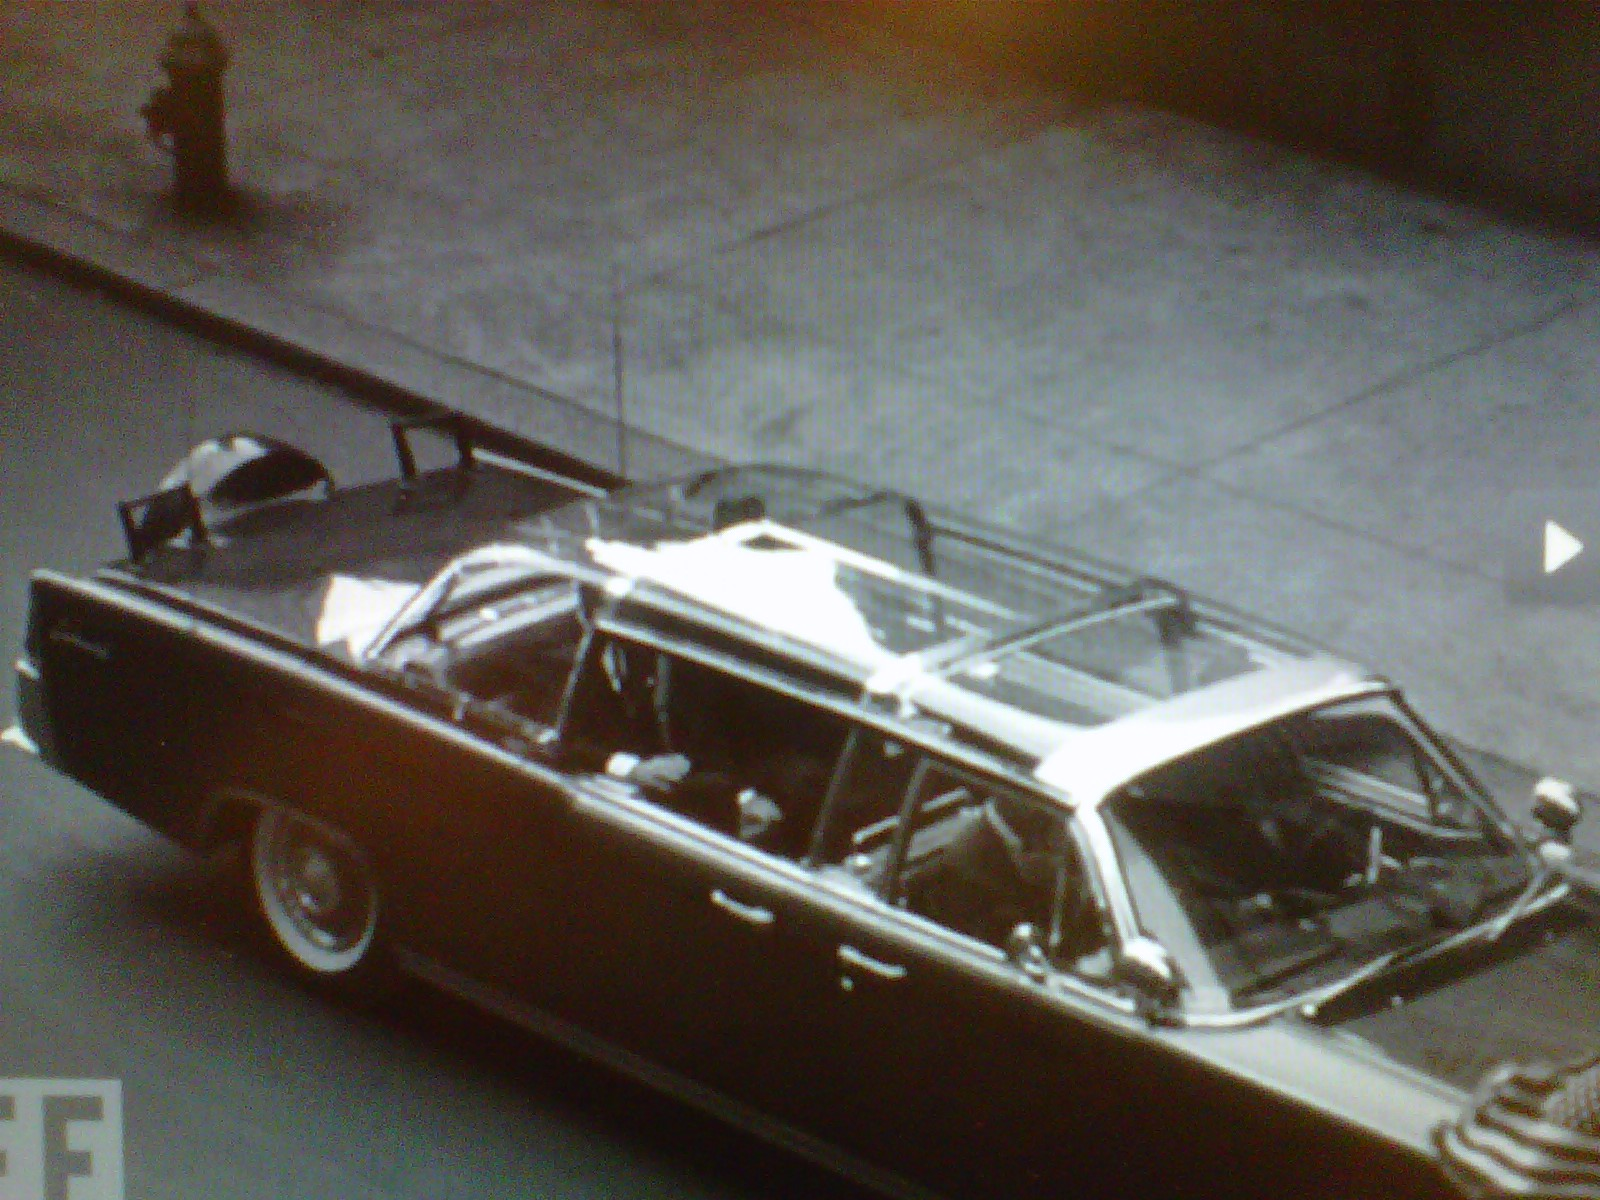 JUST DISCOVERED: 5/19/62, New York, NY-JFK & the bubbletop